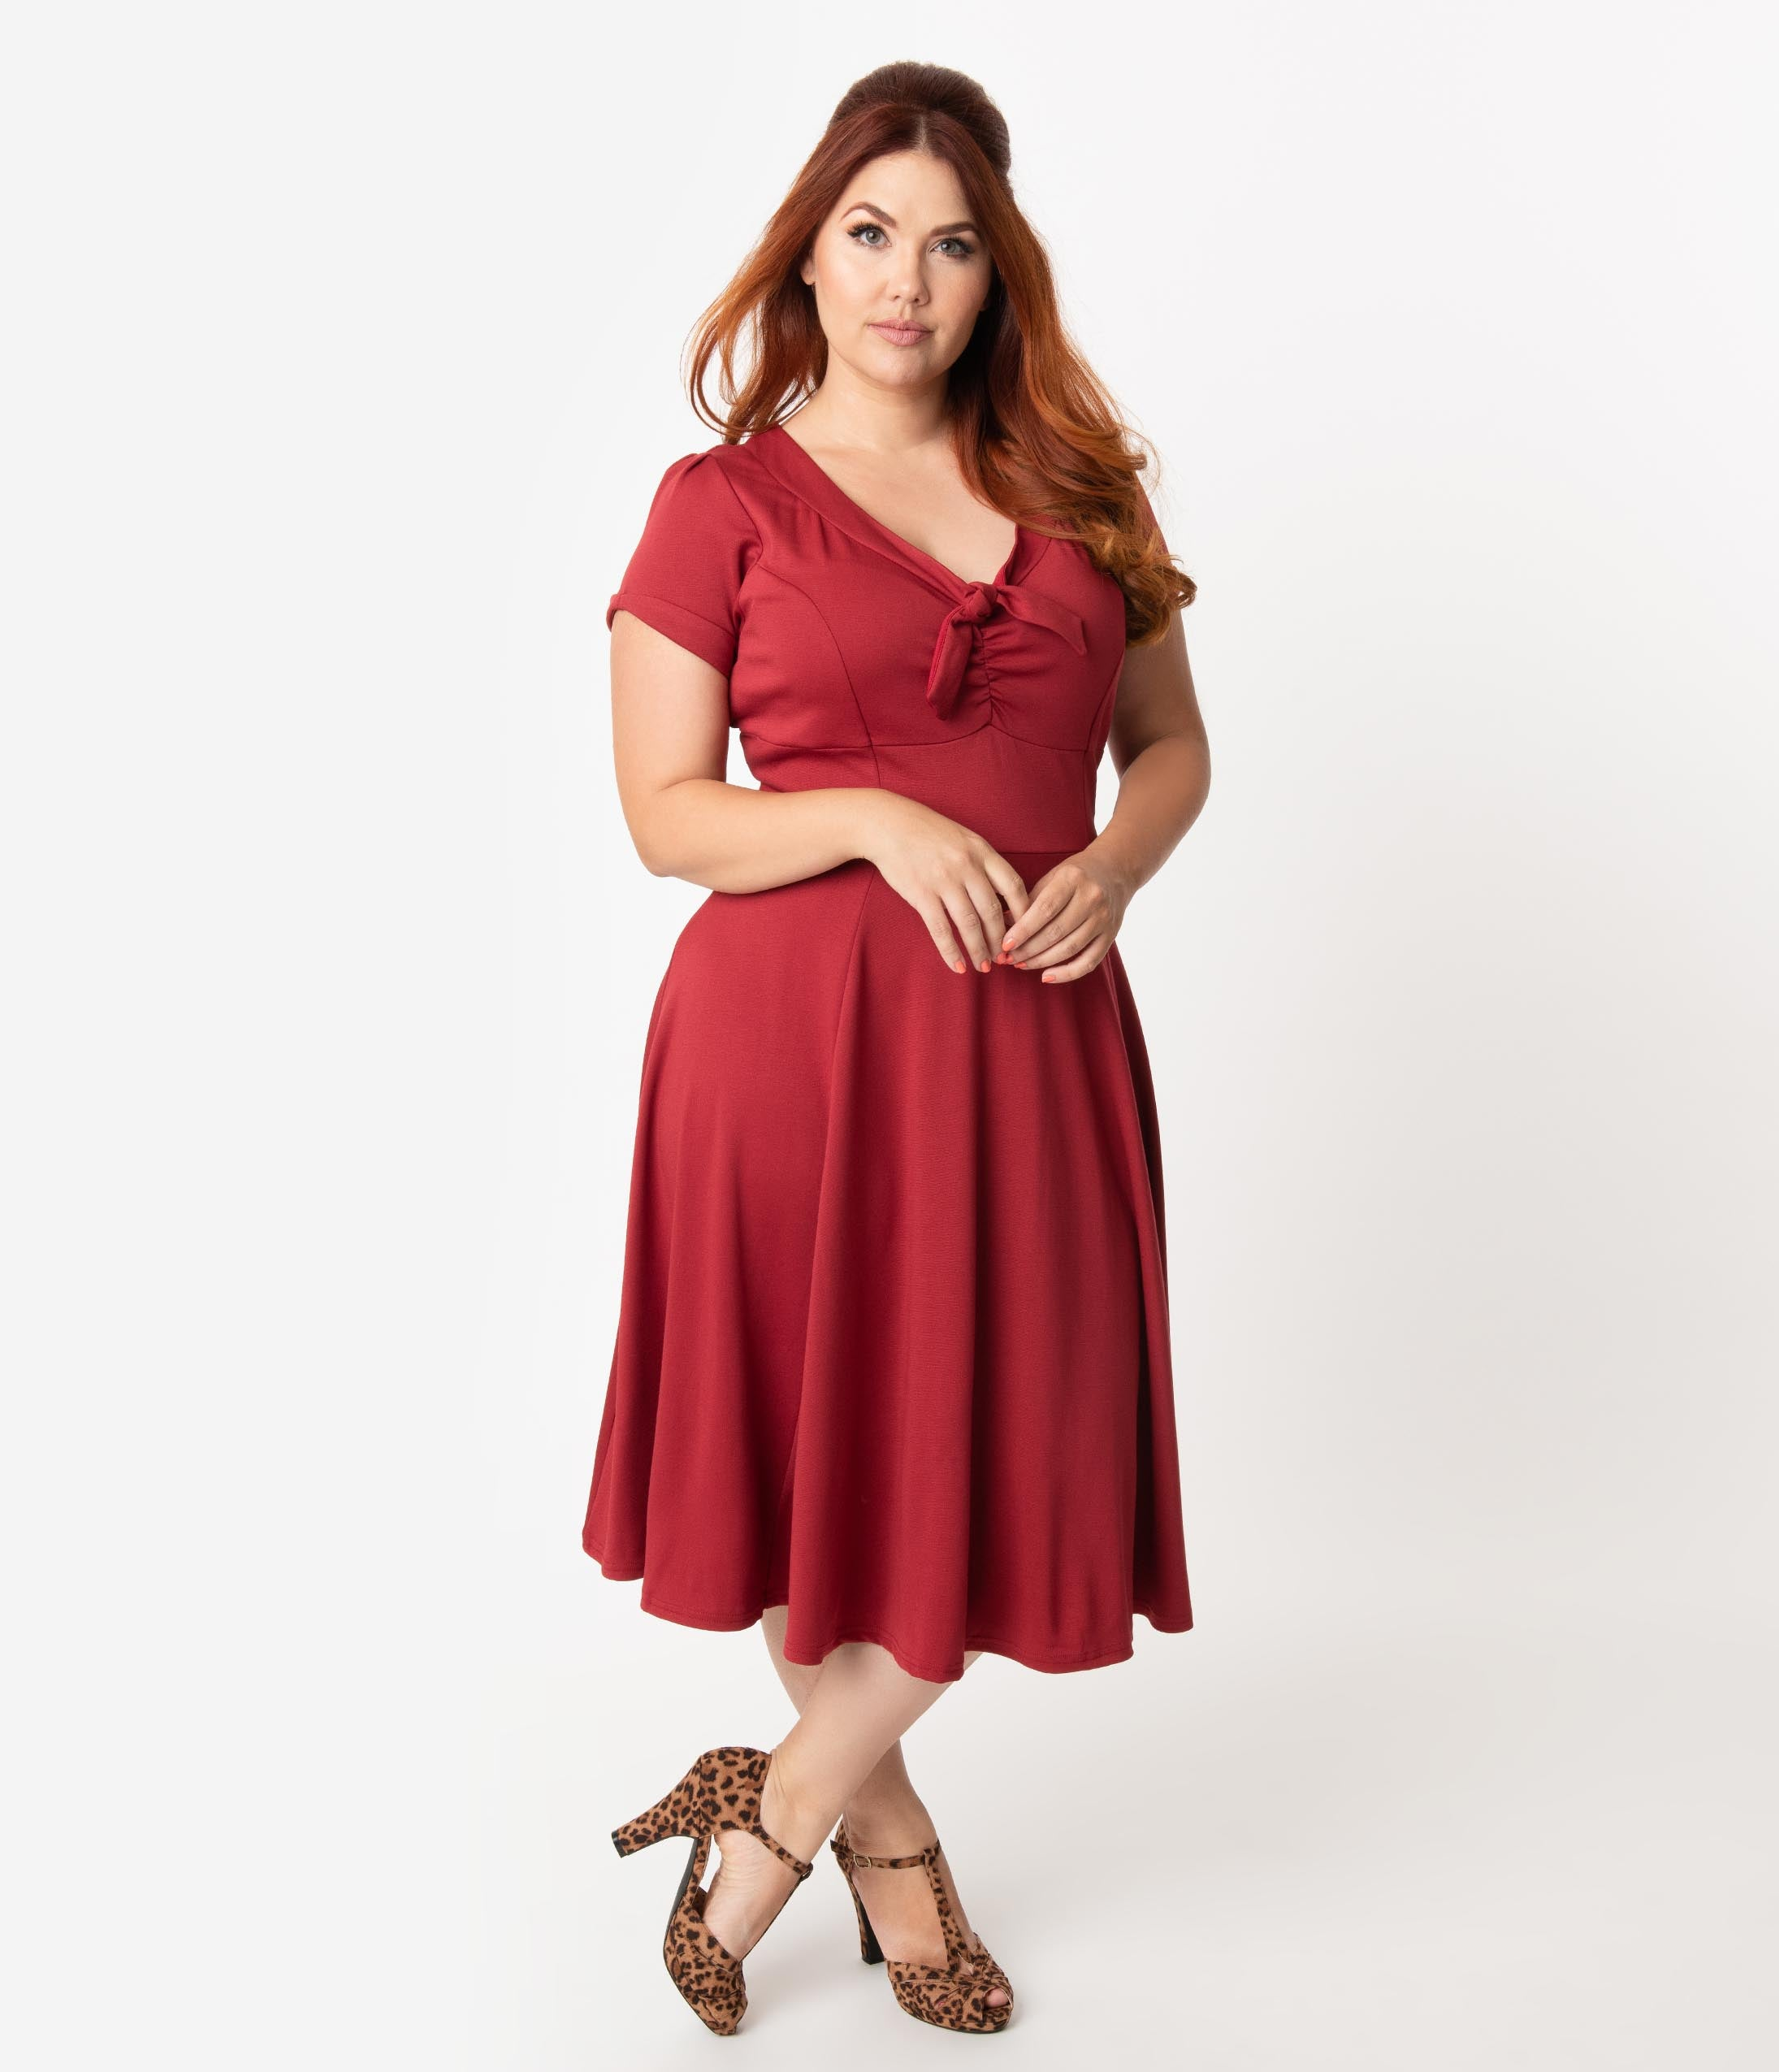 Swing Dance Clothing You Can Dance In Unique Vintage Plus Size 1940S Style Burgundy Knit Short Sleeve Natalie Swing Dress $88.00 AT vintagedancer.com